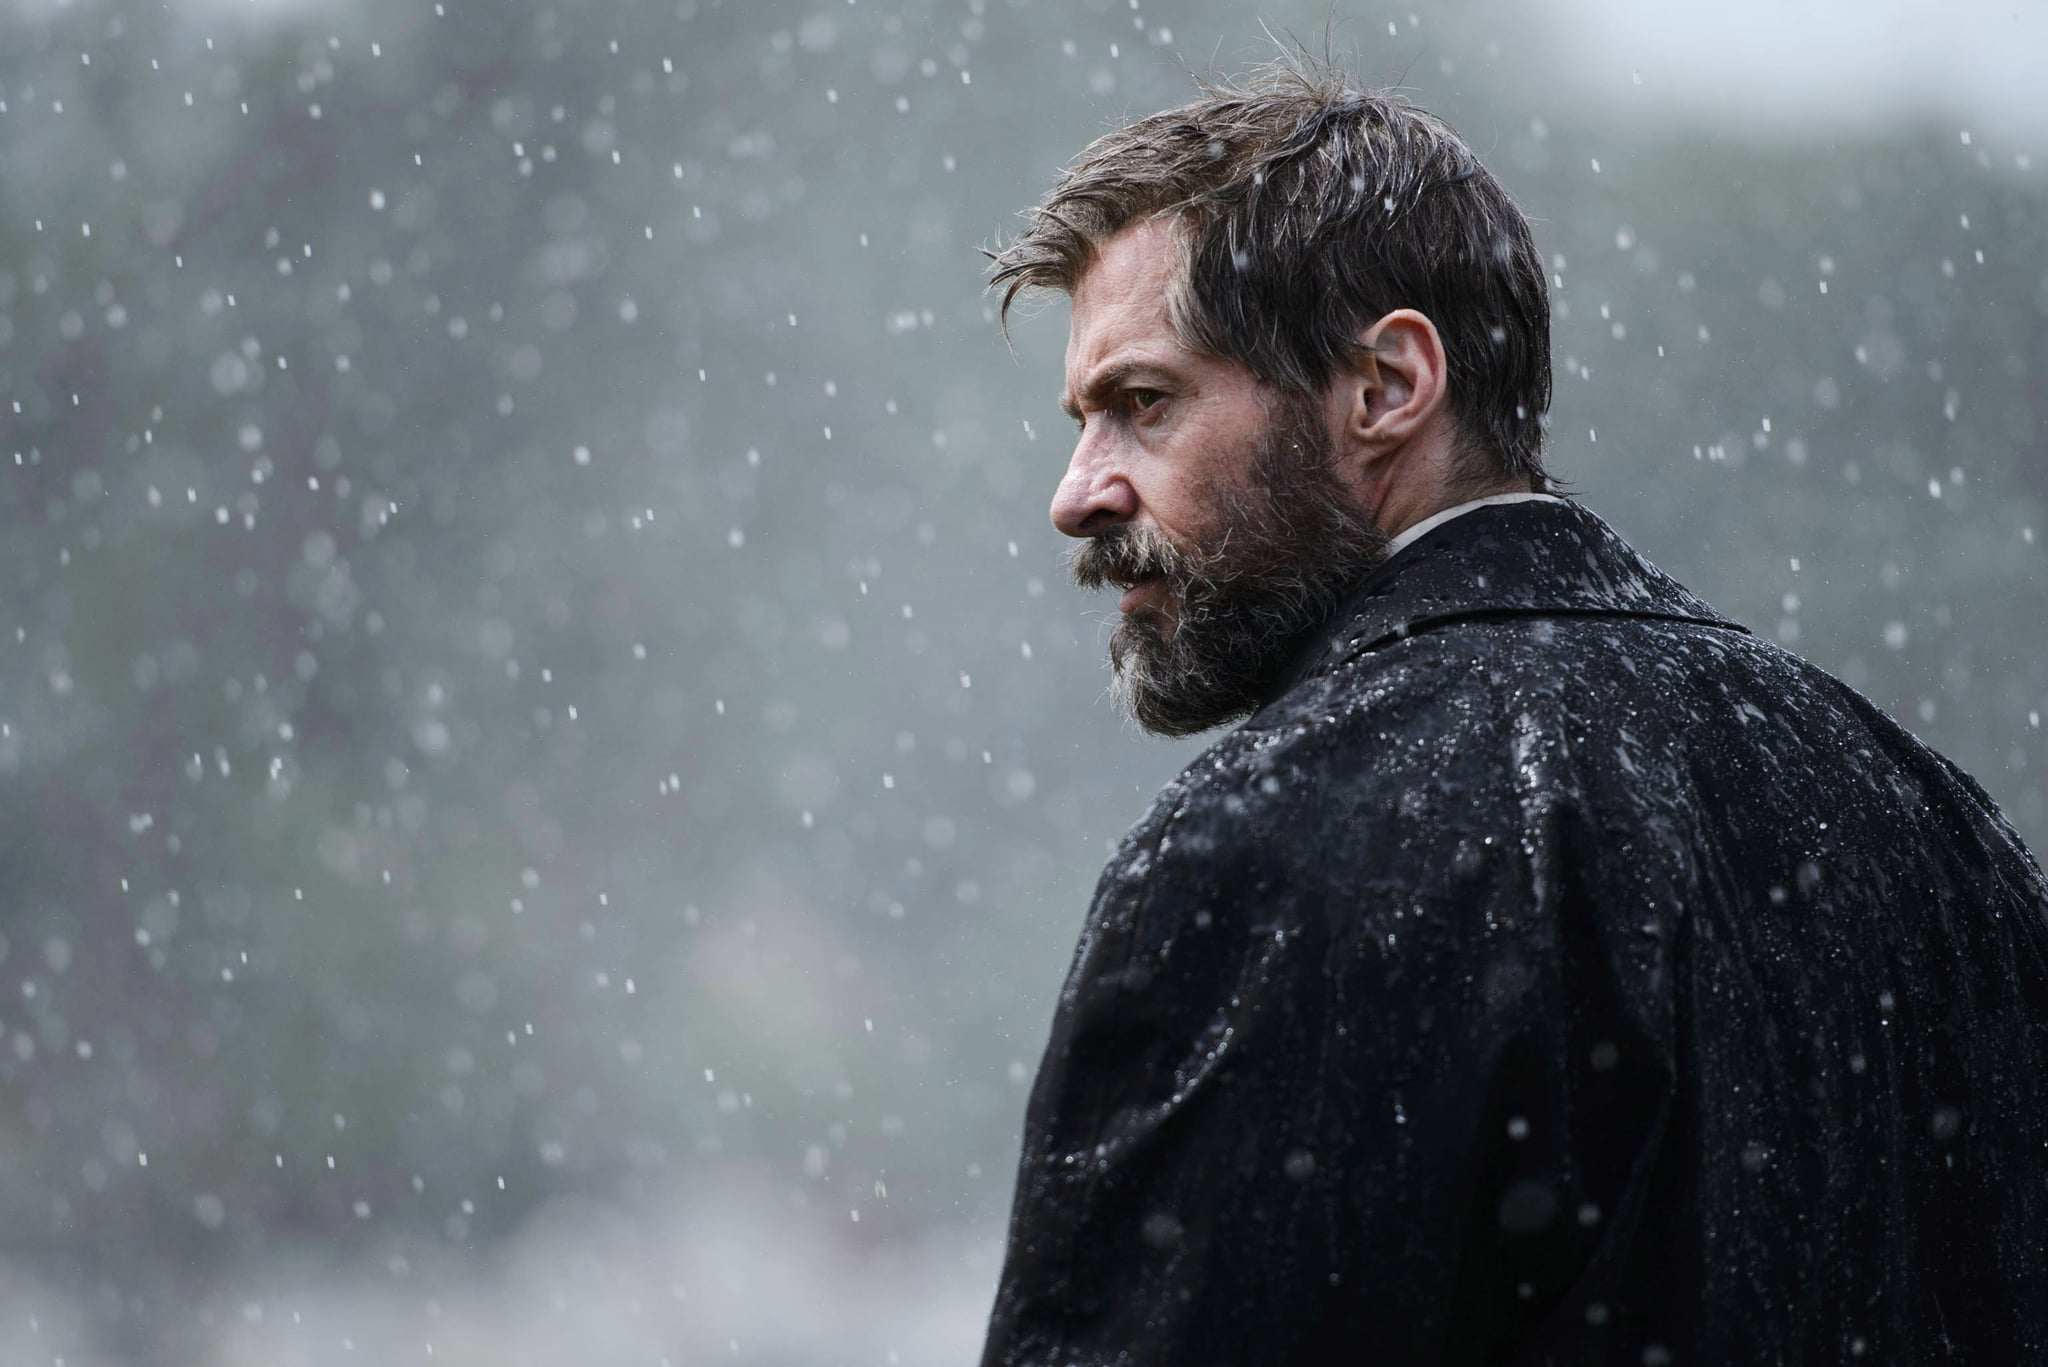 Logan 2017 Everything You Need To Remember About The X Men Movies In 1 Easy To Read Timeline Popsugar Entertainment Photo 13